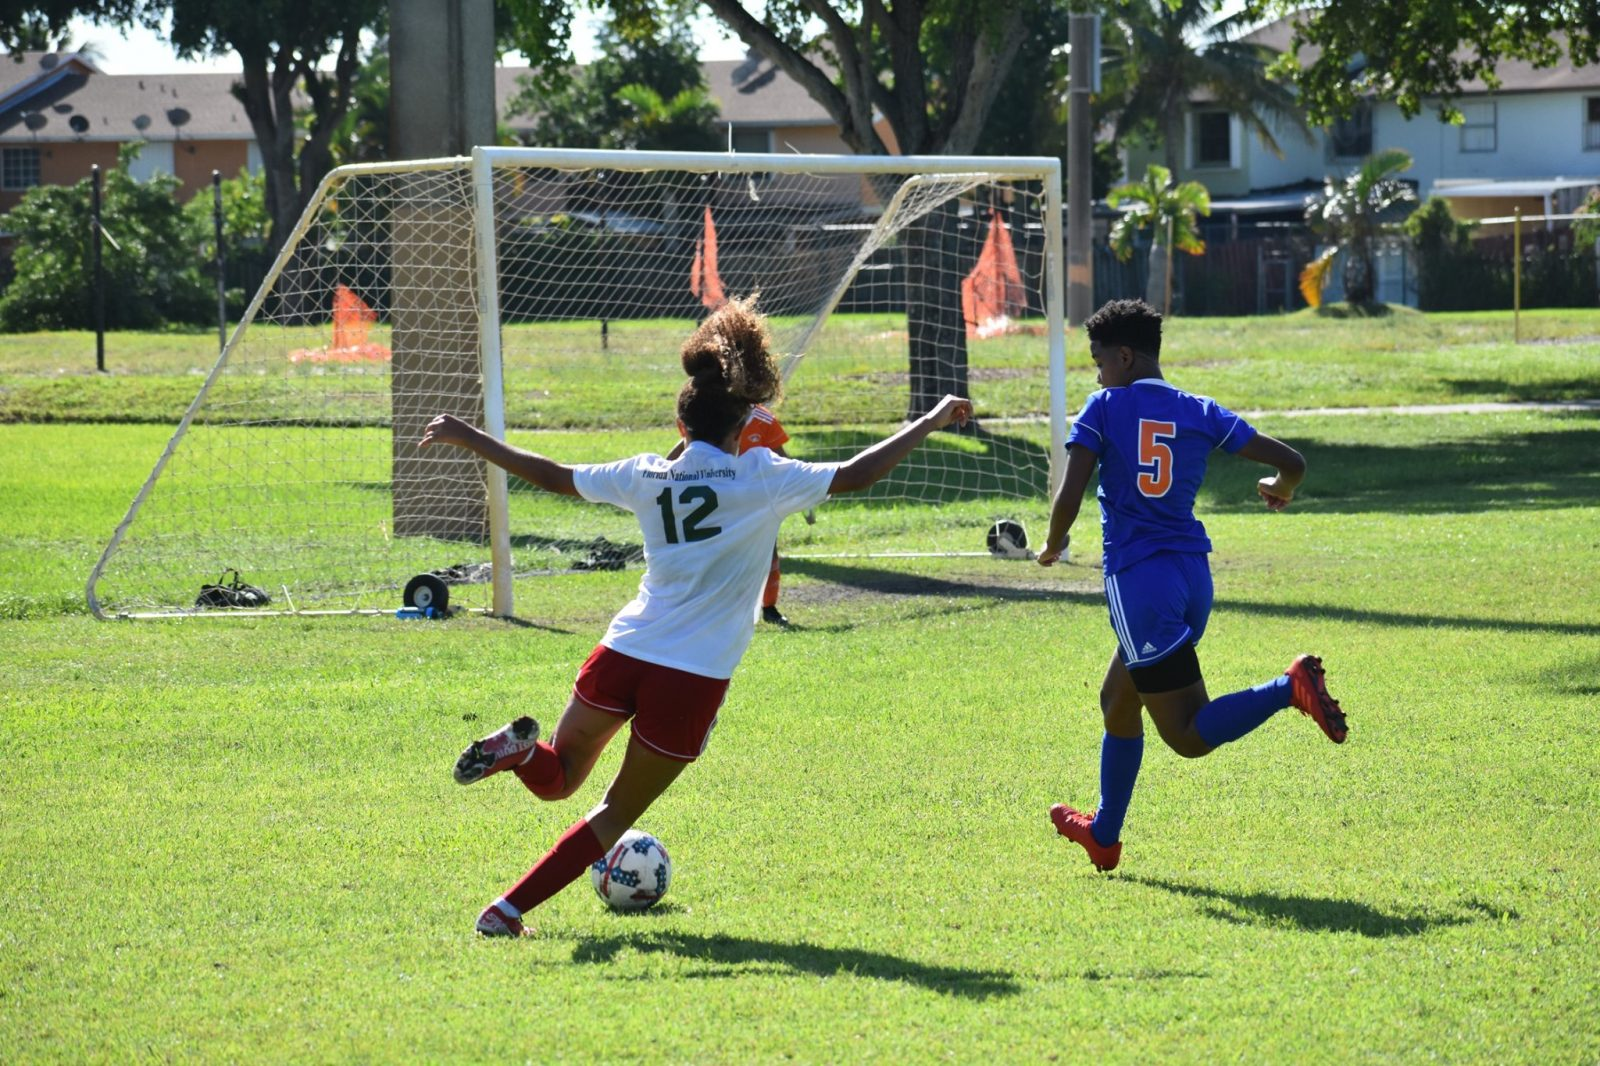 FNU Women's soccer player Dominique Mosley During the game - Copy